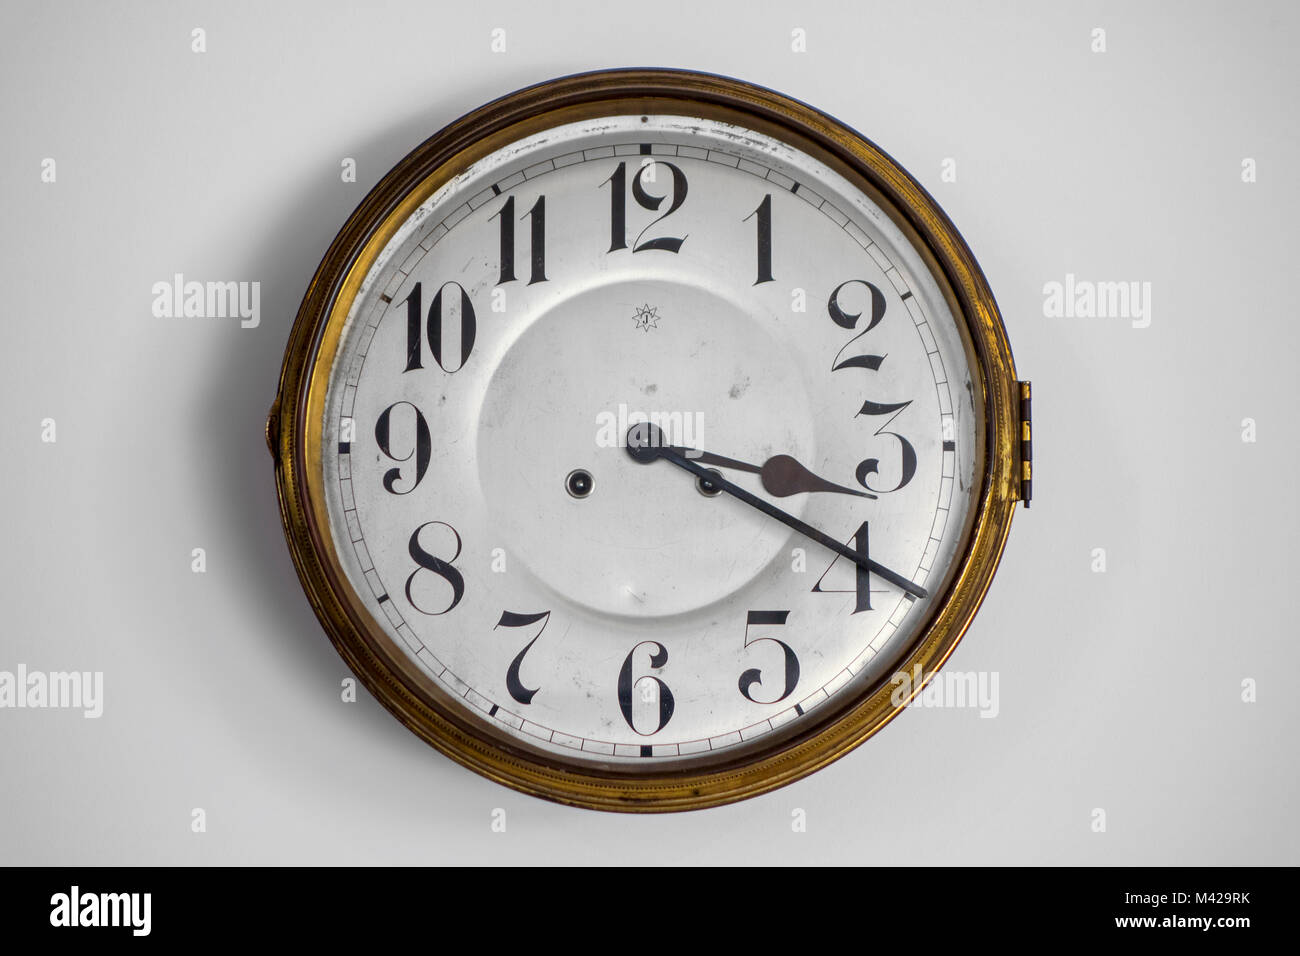 Vintage circular wall clock from the early twentieth century made by Junghans Uhren GmbH, German watch and clock - Stock Image